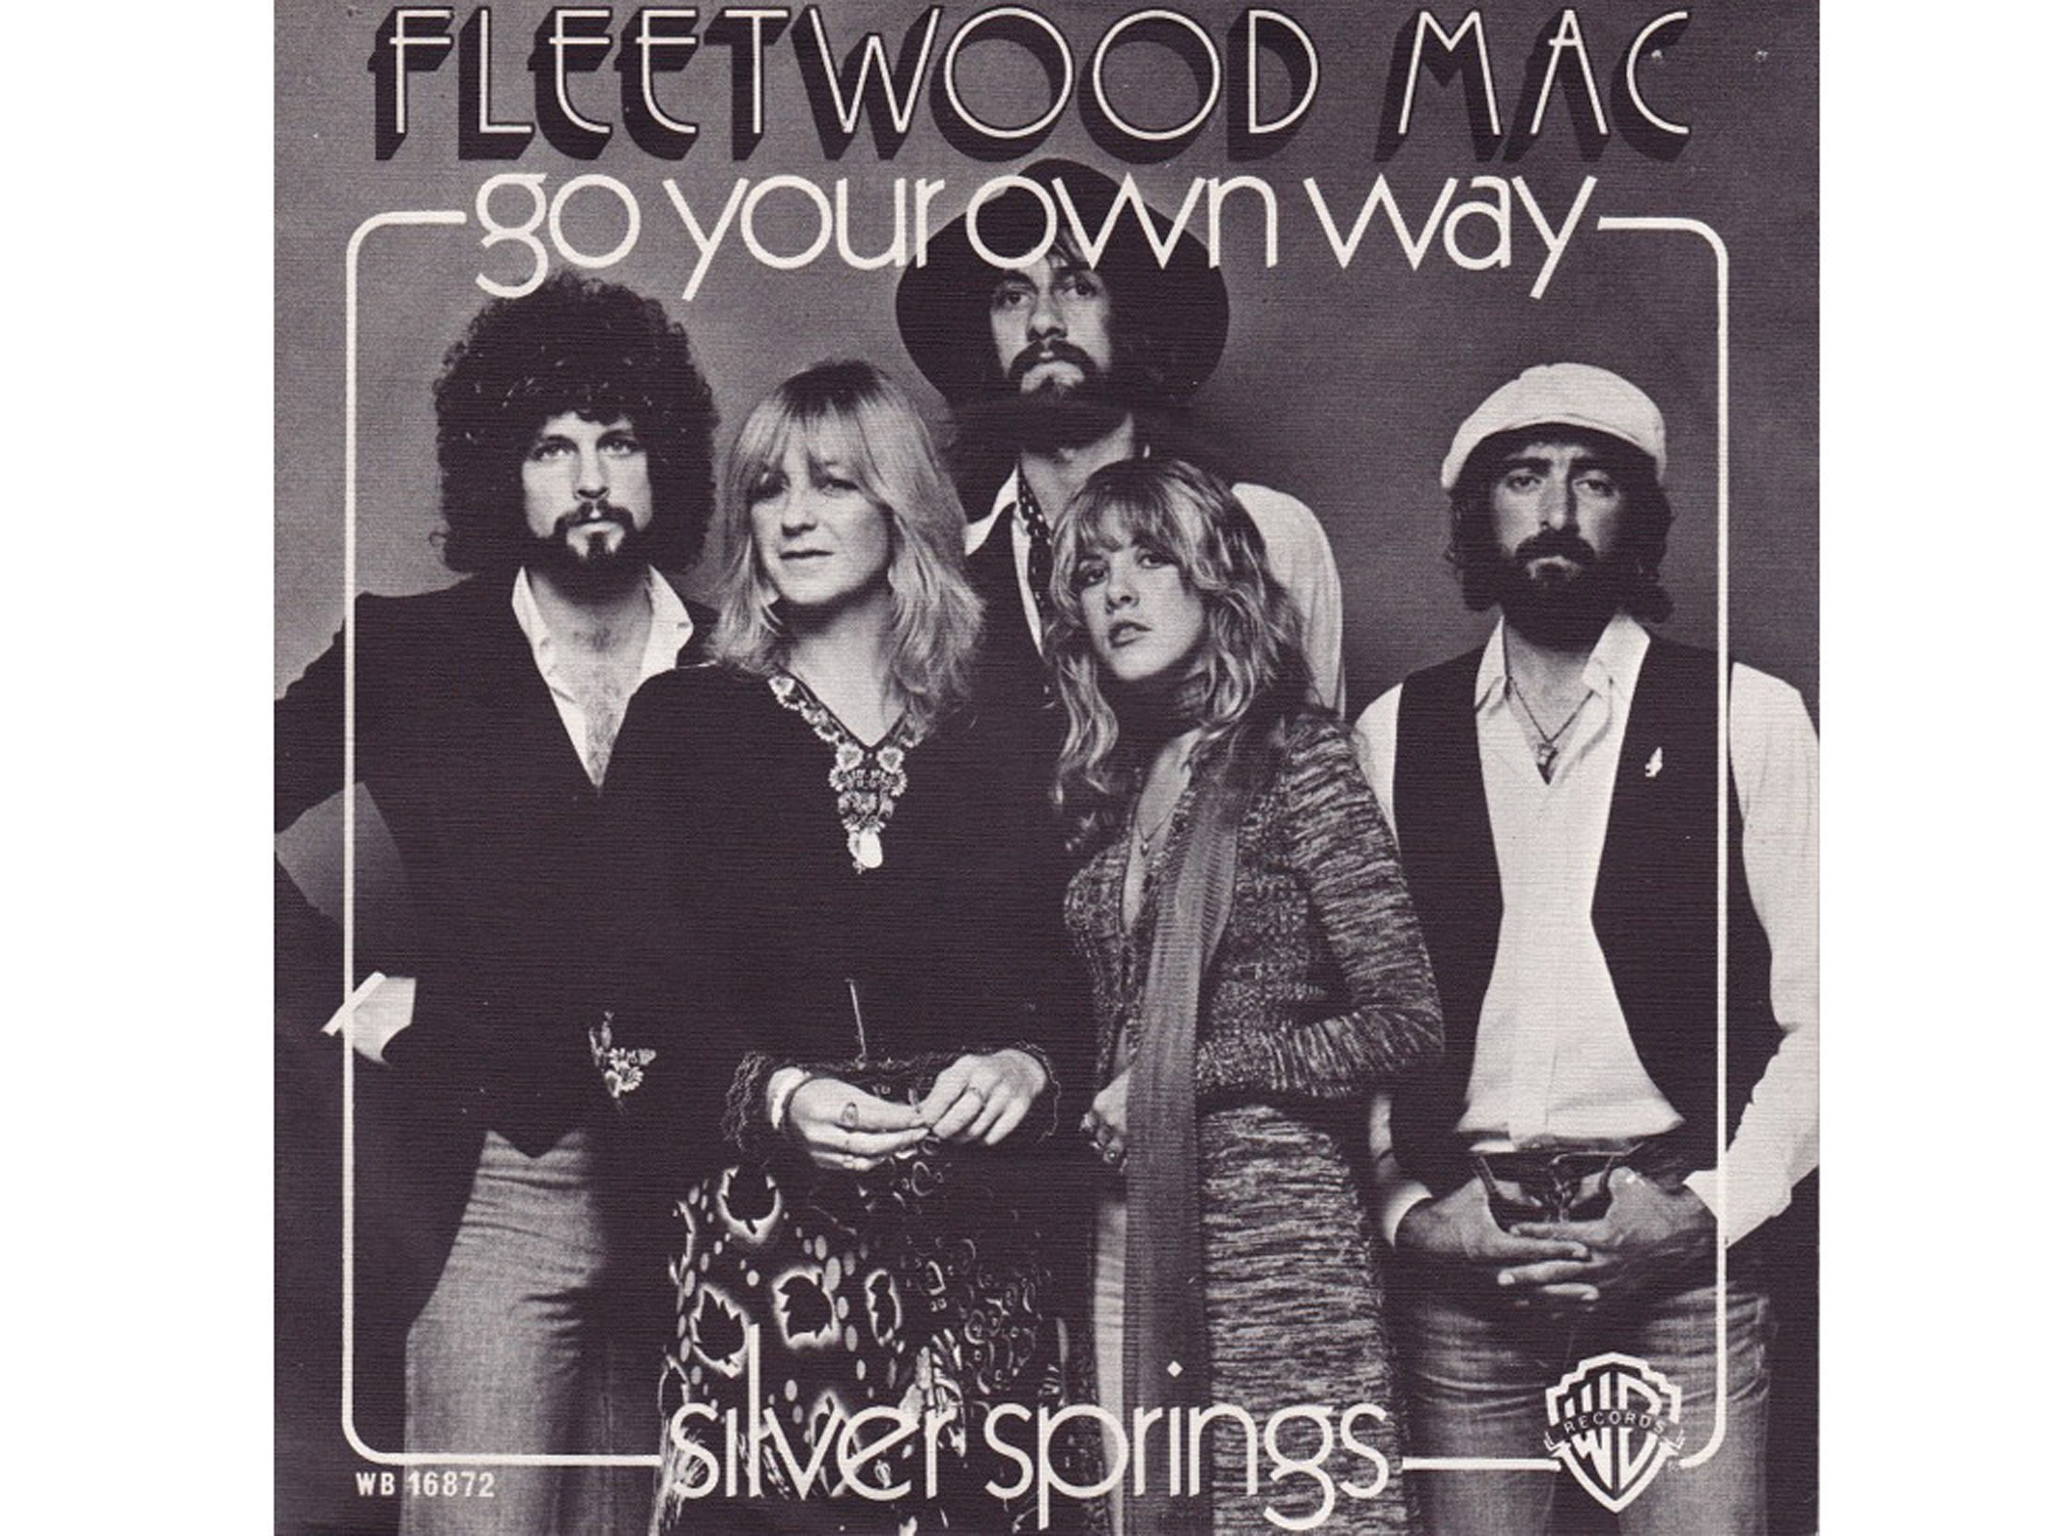 'Go Your Own Way' – Fleetwood Mac